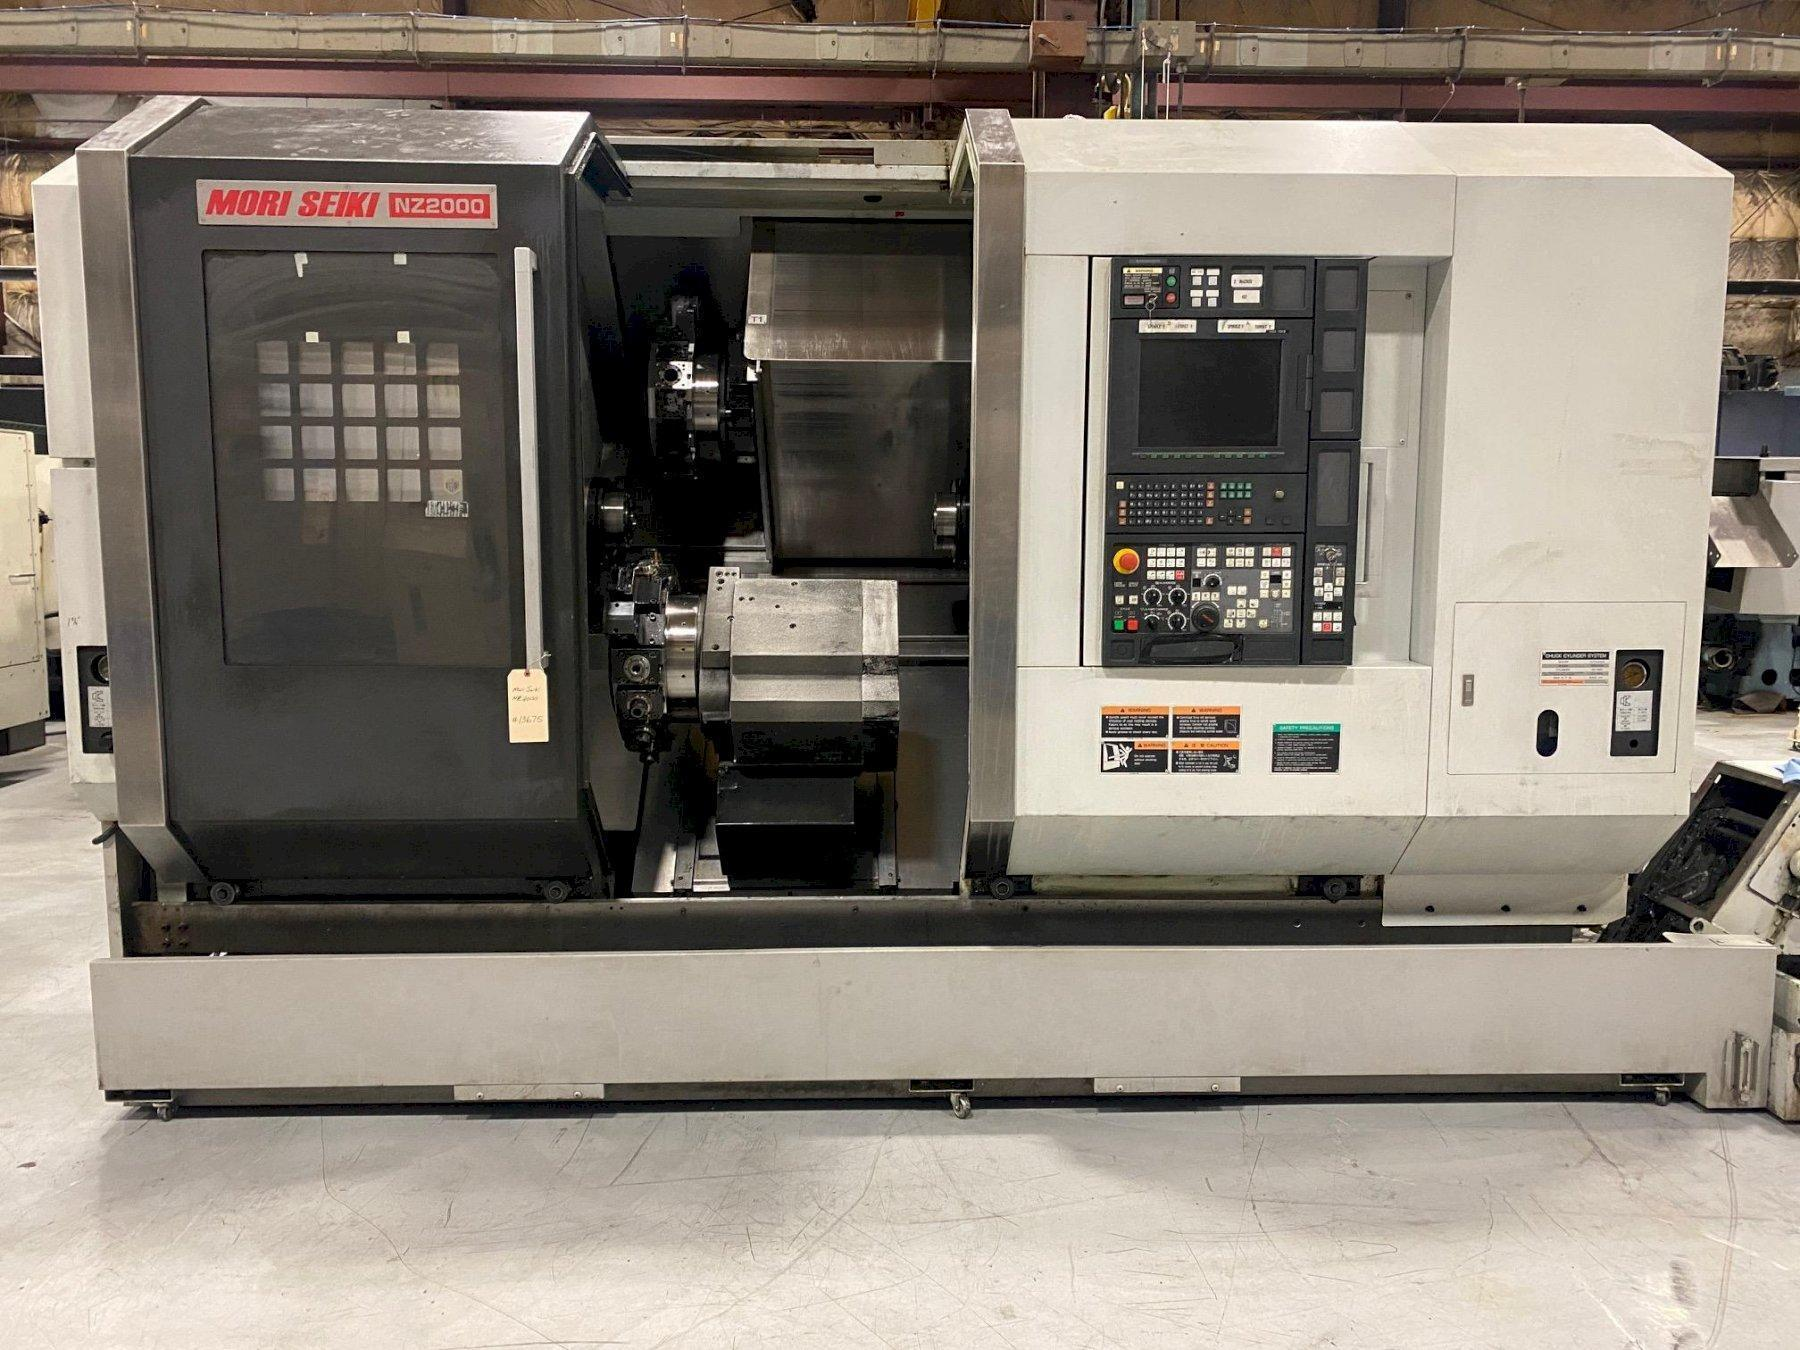 2008 MORI SEIKI MODEL #NZ2000 CNC TWIN TURRET TWIN SPINDLE TURNING CENTER LATHE WITH LIVE TOOLING: STOCK 15146